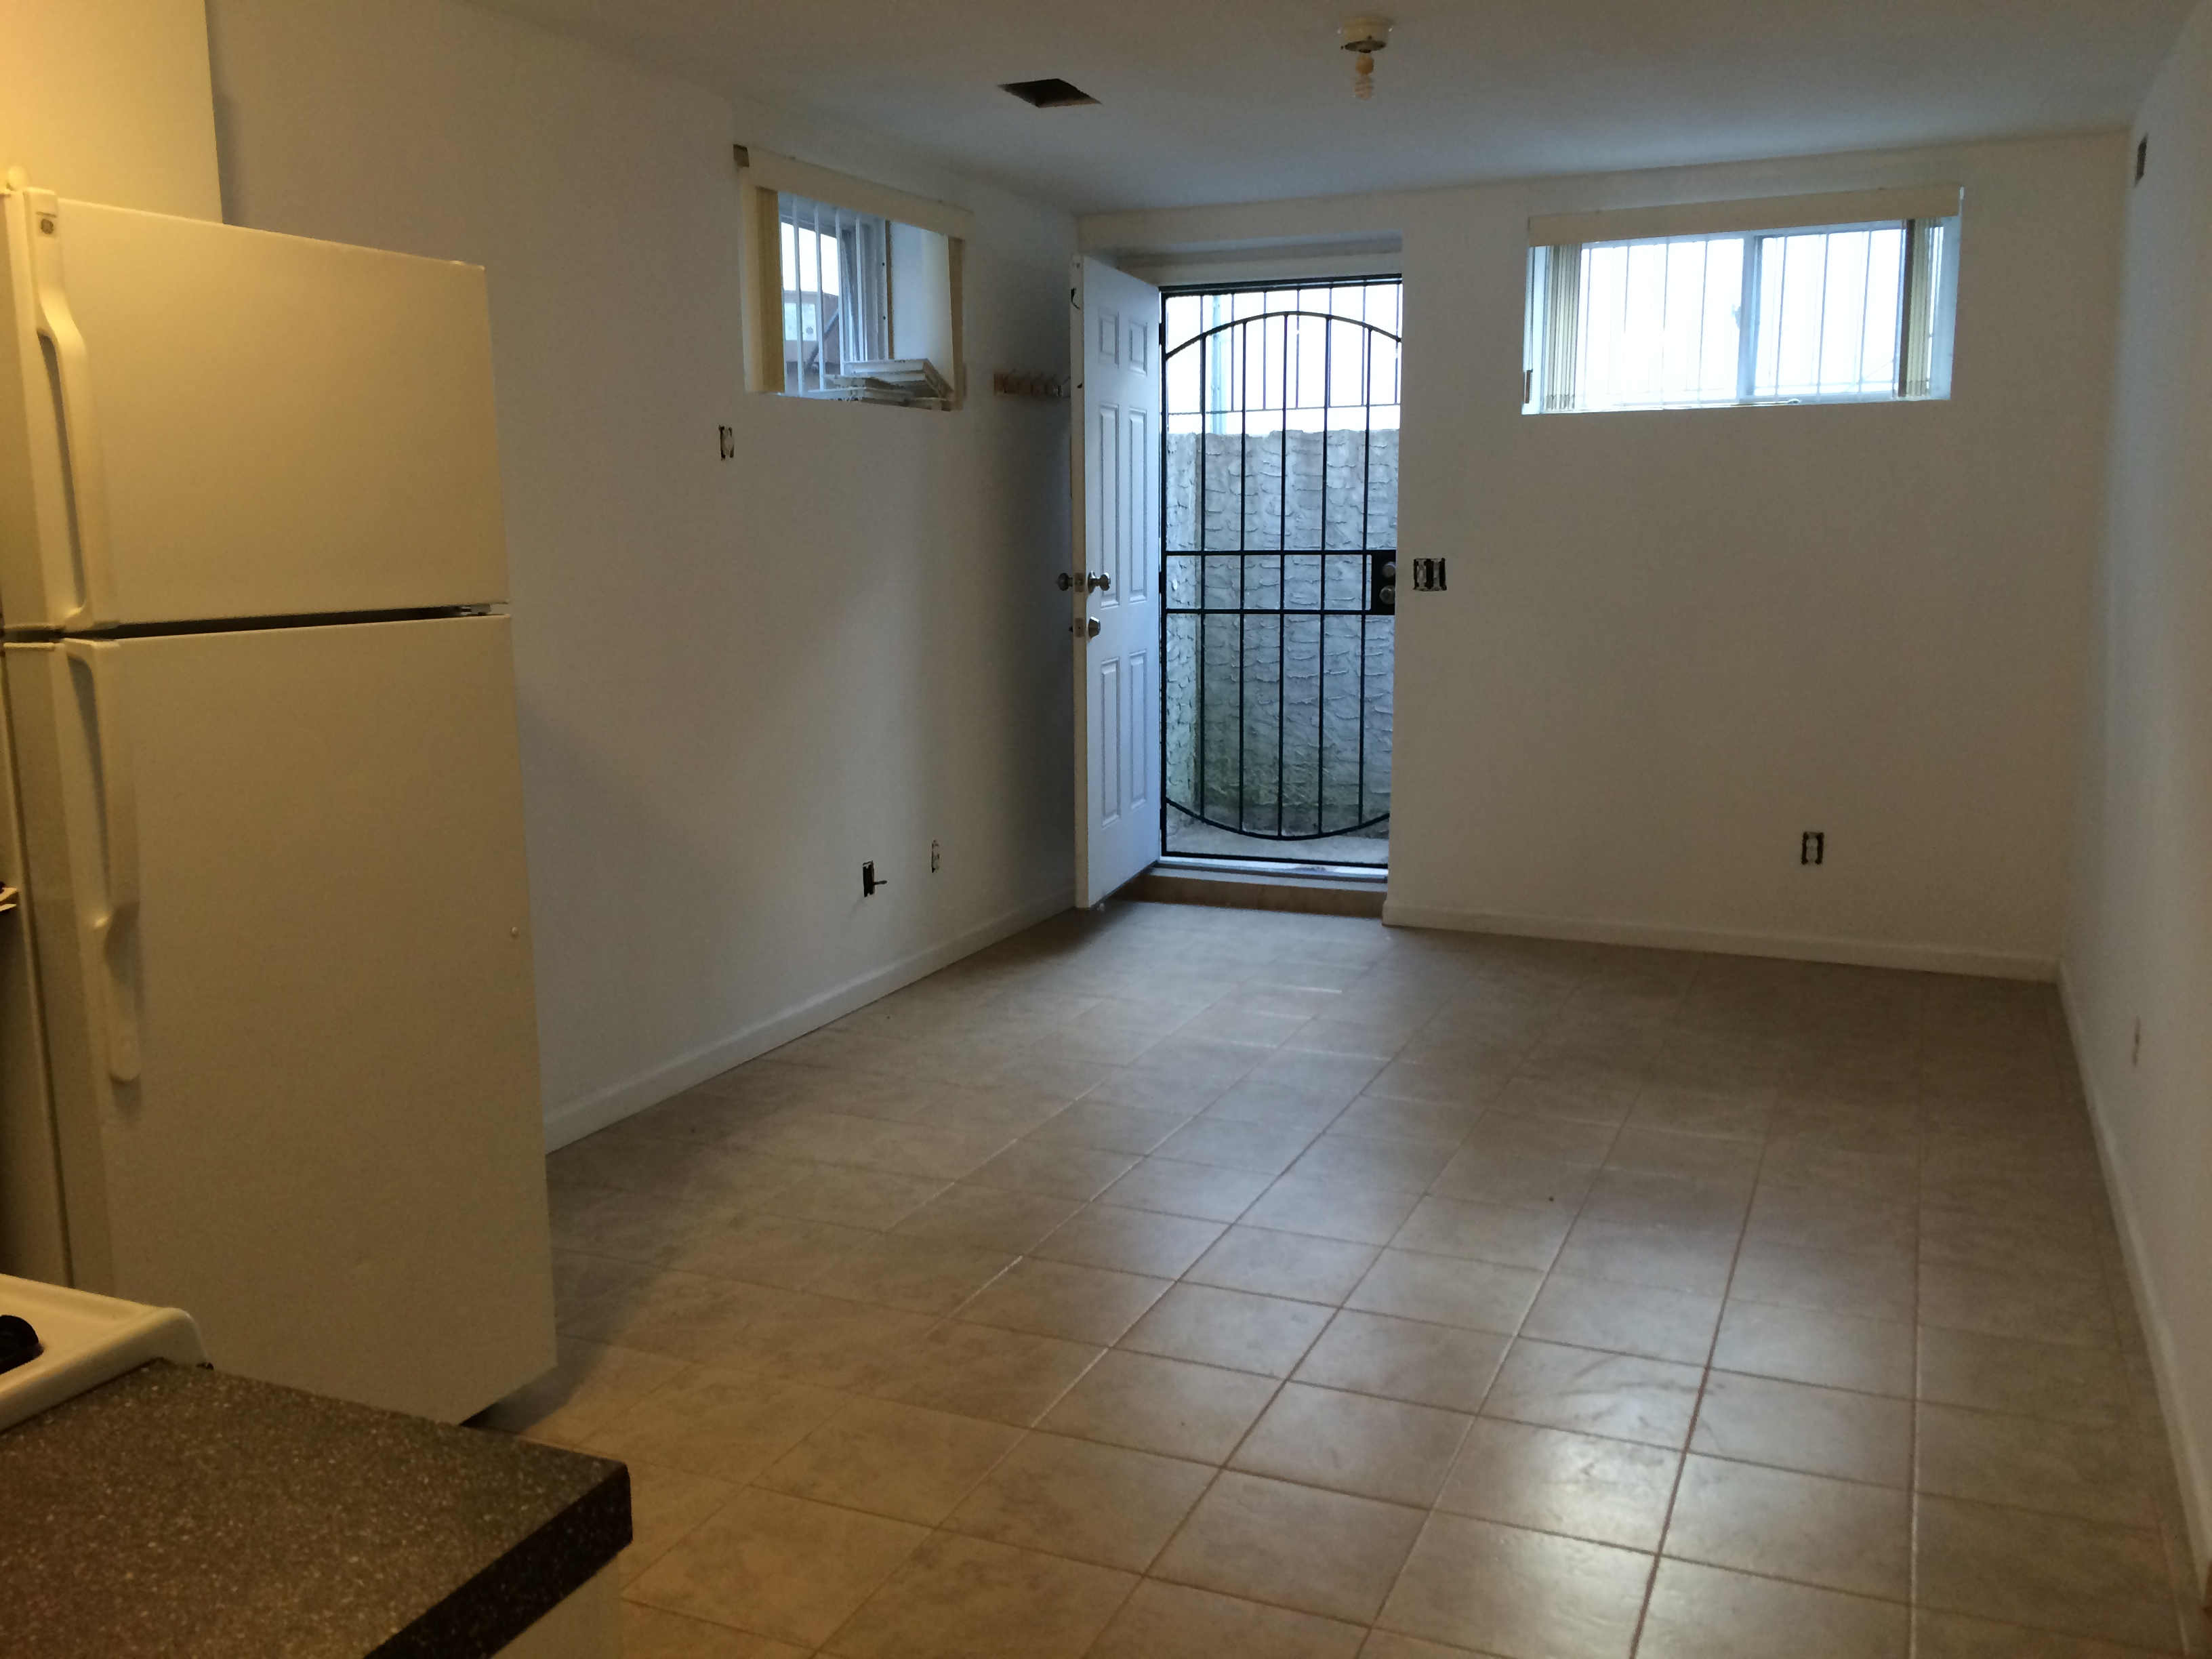 2 Bedroom Apartment Staten Island 28 Images 2 Bedroom Apartment Staten Island 28 Images